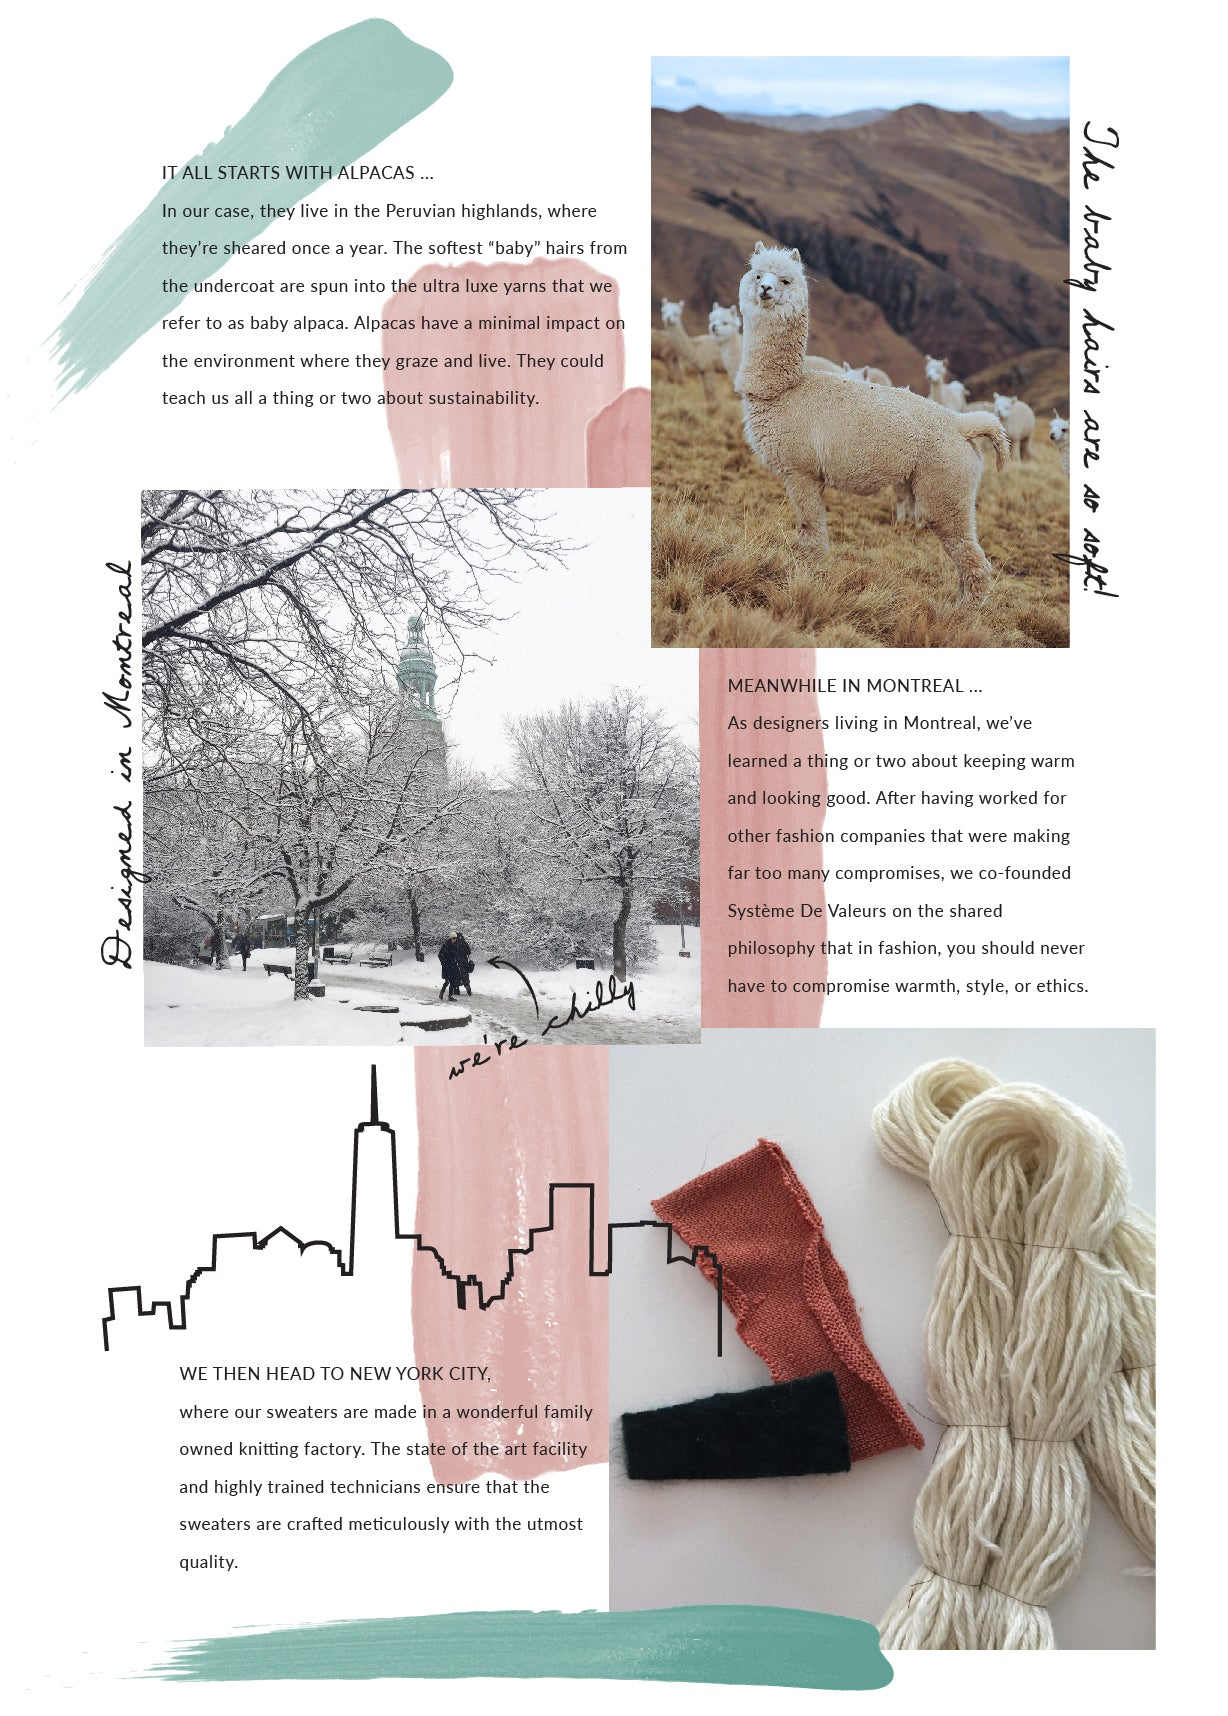 Système De Valeurs is a sustainable knitwear company based in Montreal Canada. Co-founded by two best friends seeking to make a high quality, long lasting product as a reaction to the disposable fast fashion industry.